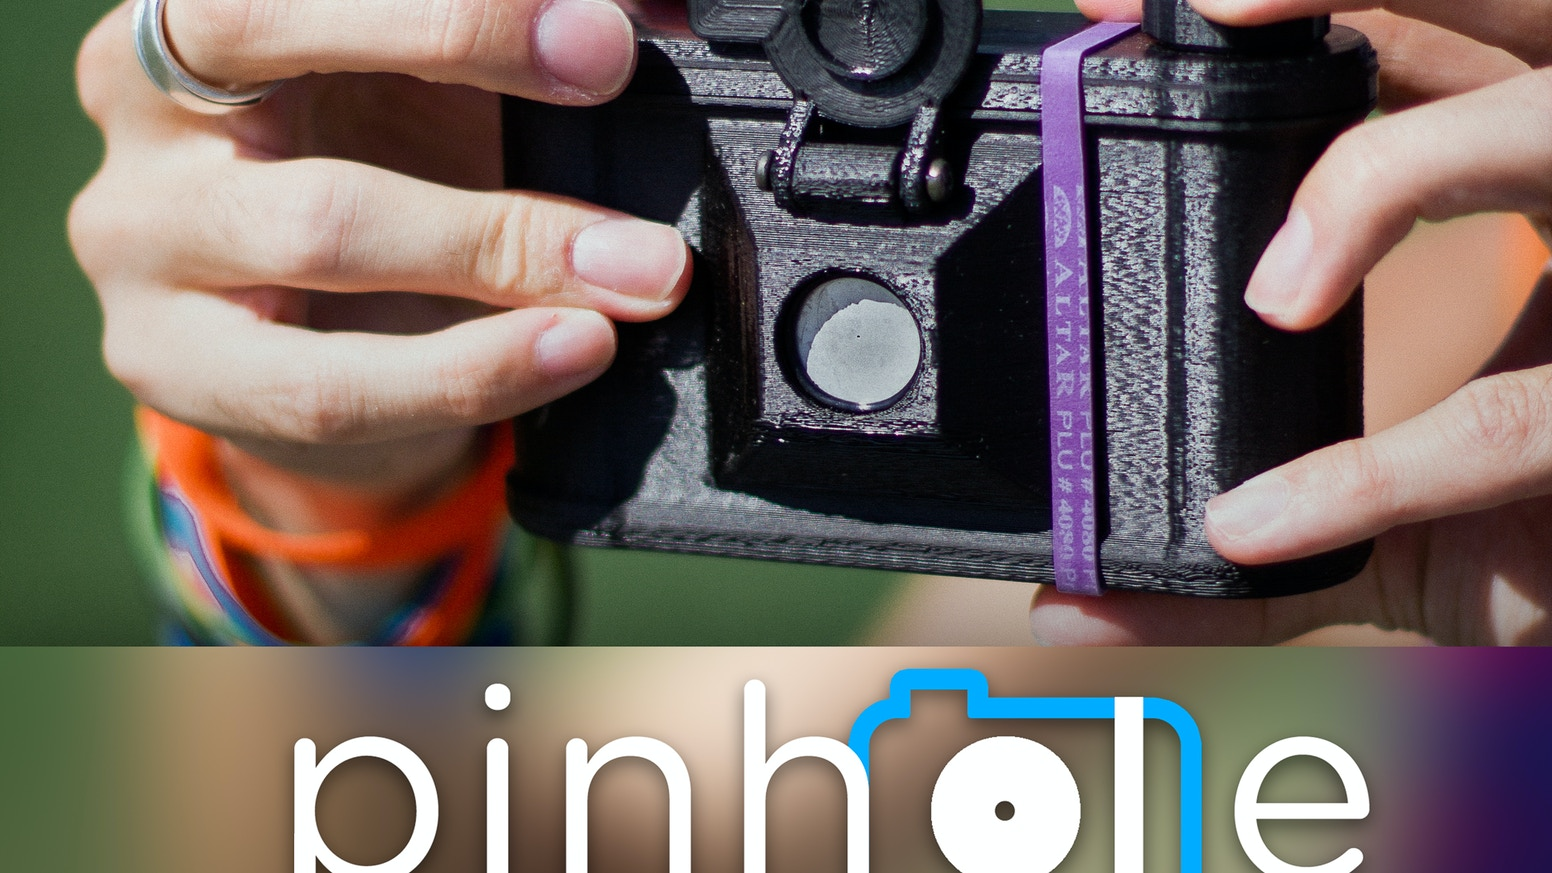 Pinhole - a 3D printed camera. Get one or print your own - either way, take magical photographs from a new, yet old perspective.